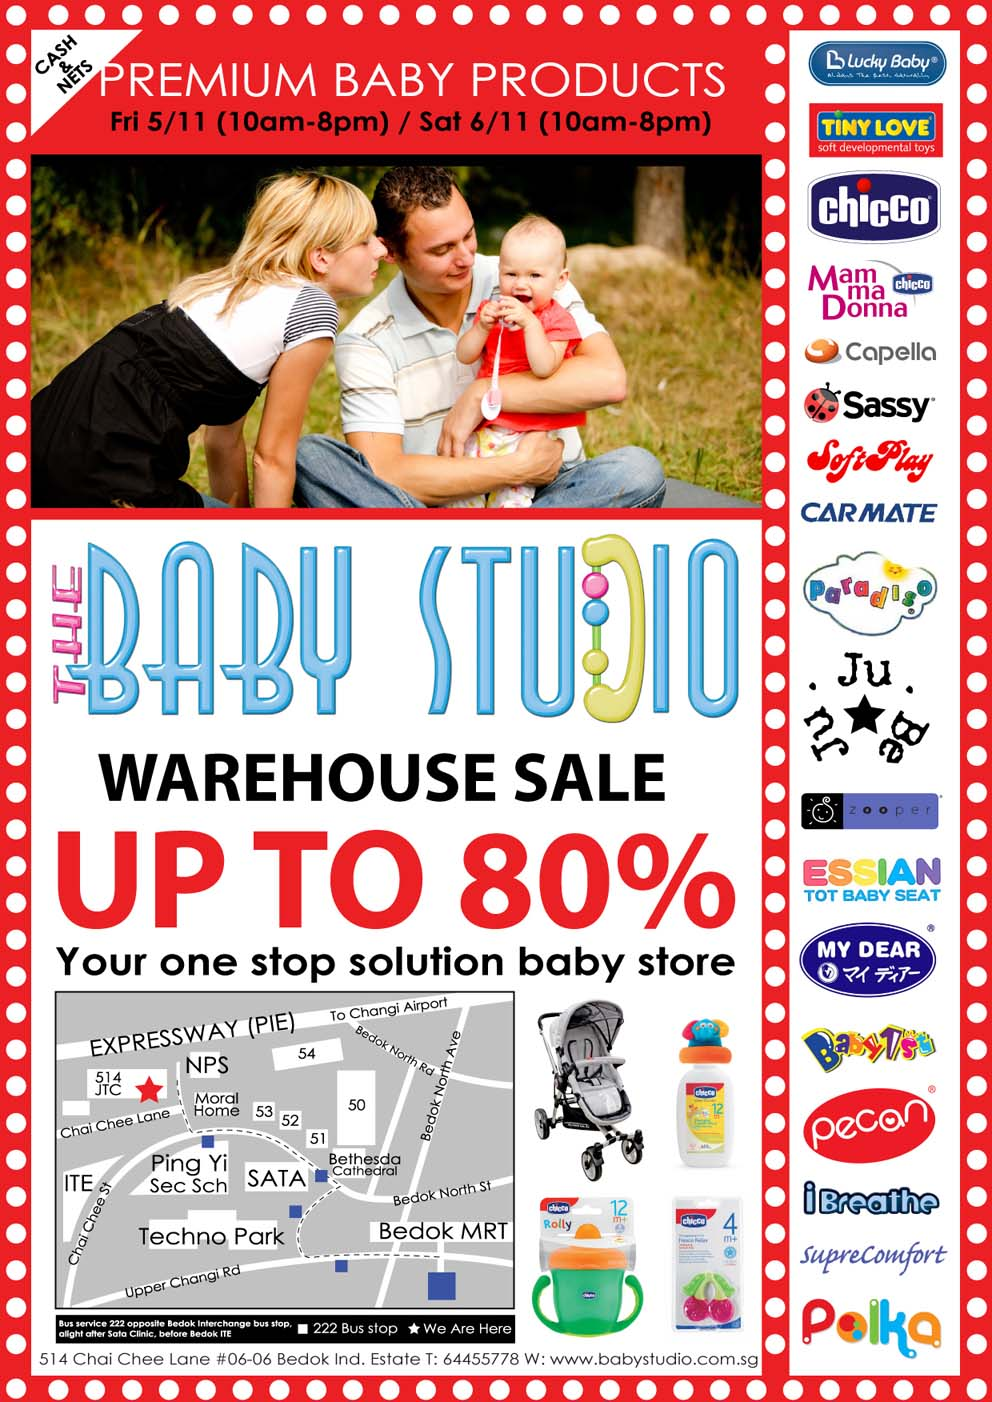 The Baby Studio Warehouse Sale